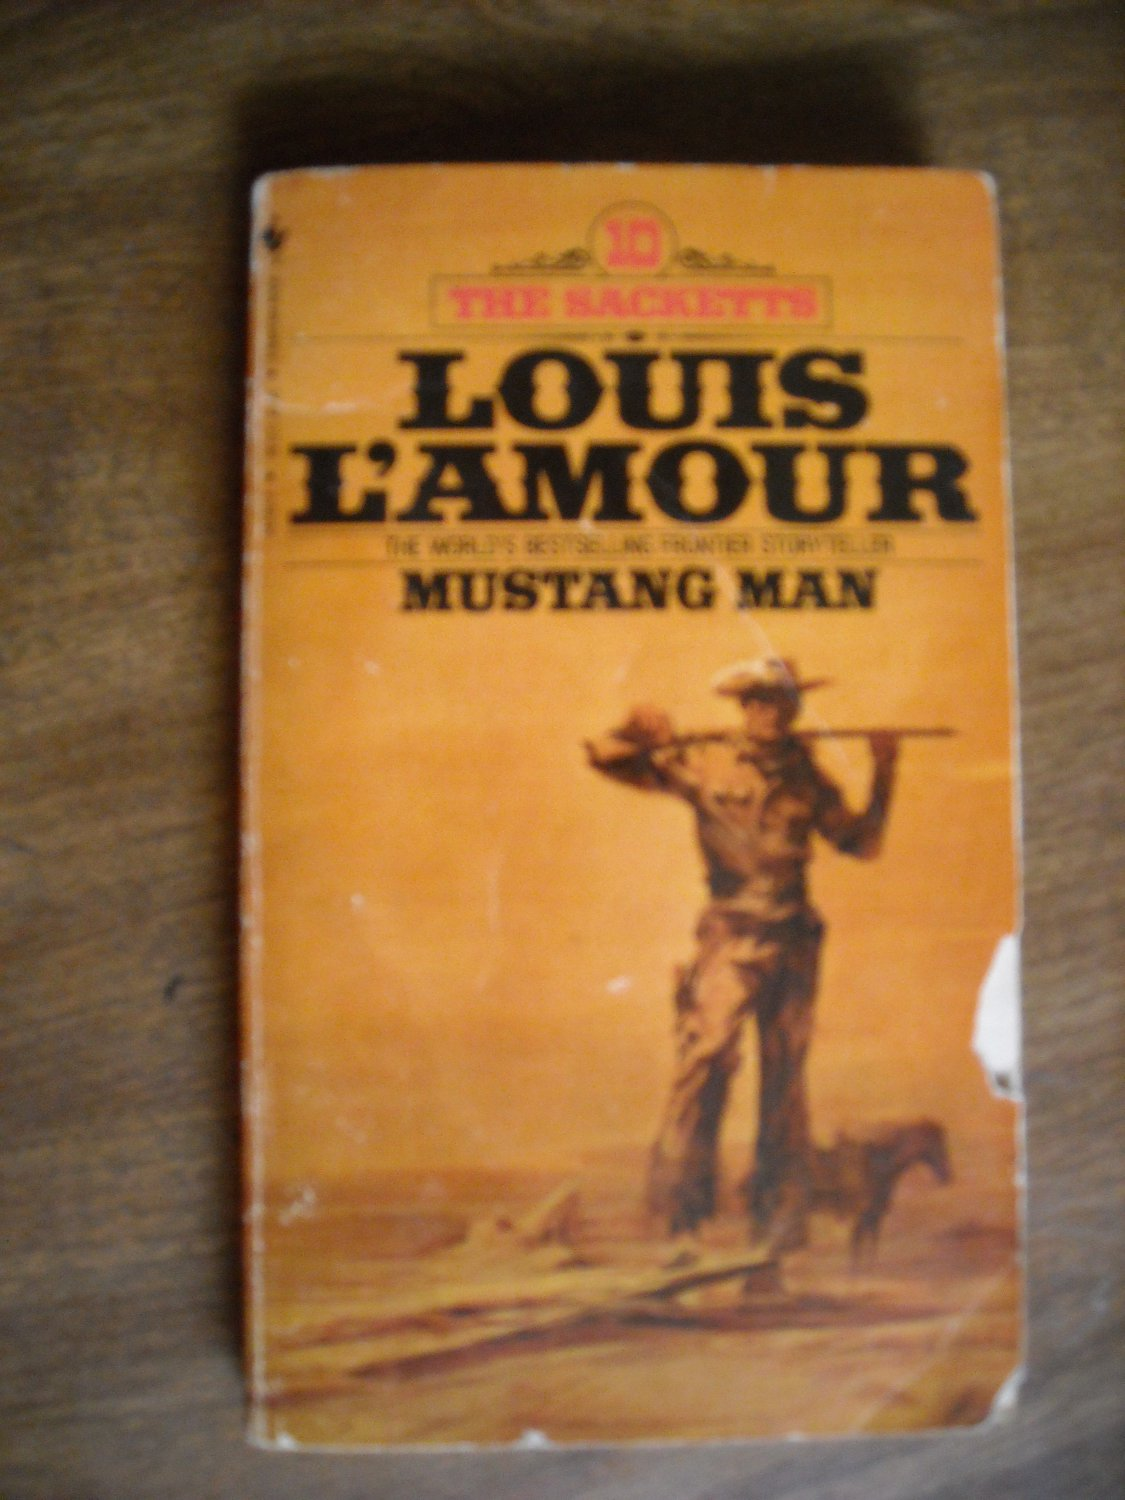 Mustang Man by Louis L'Amour The Sacketts 10 (1981) (BB61)